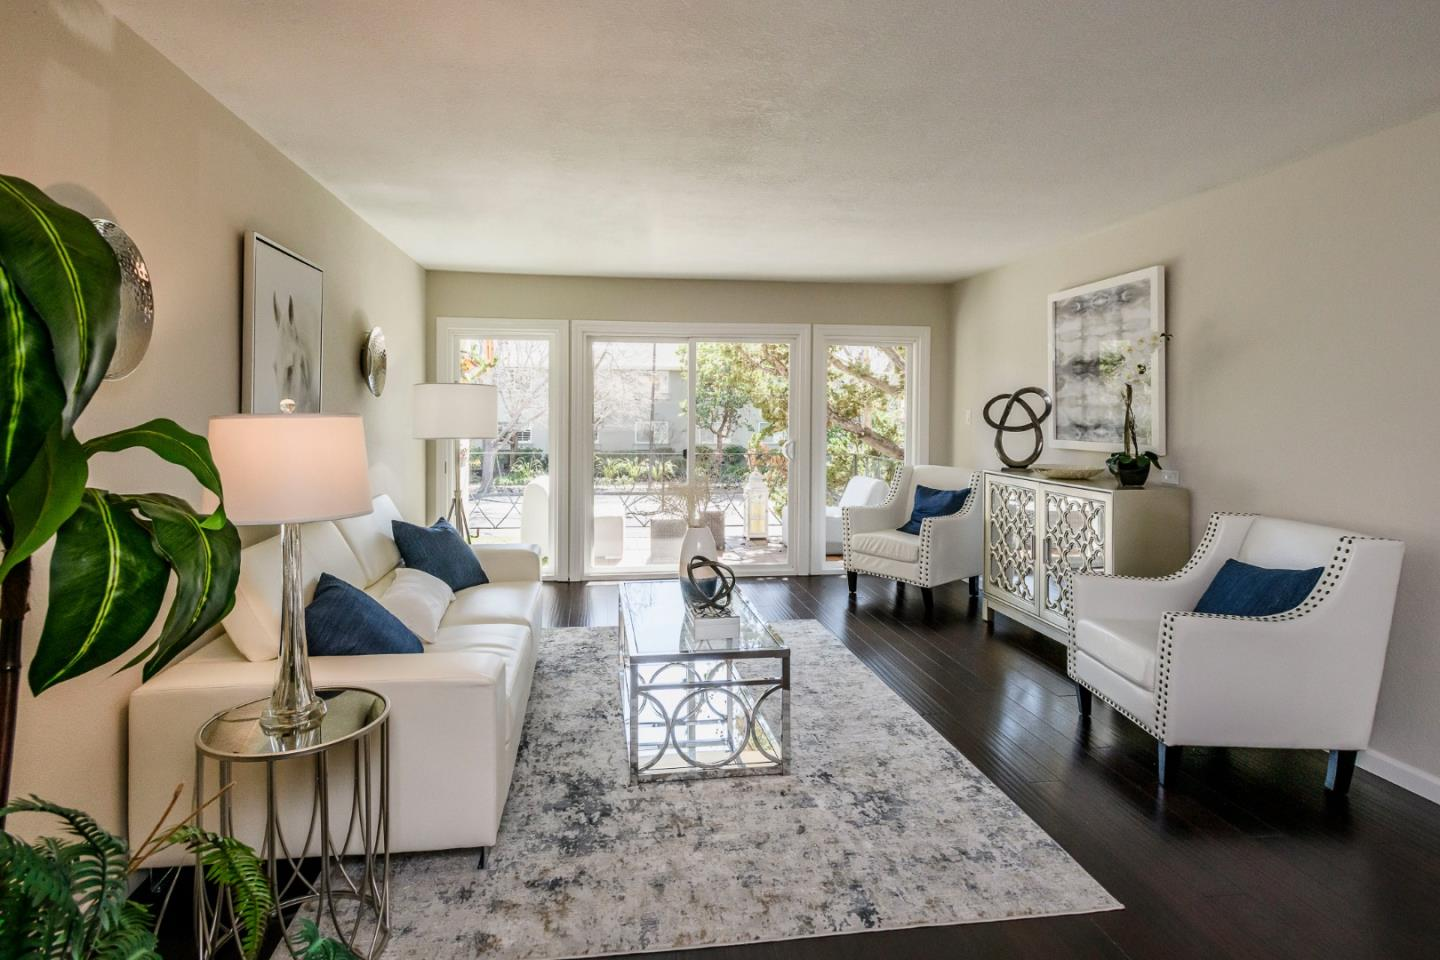 21 Willow RD 9, Menlo Park, California